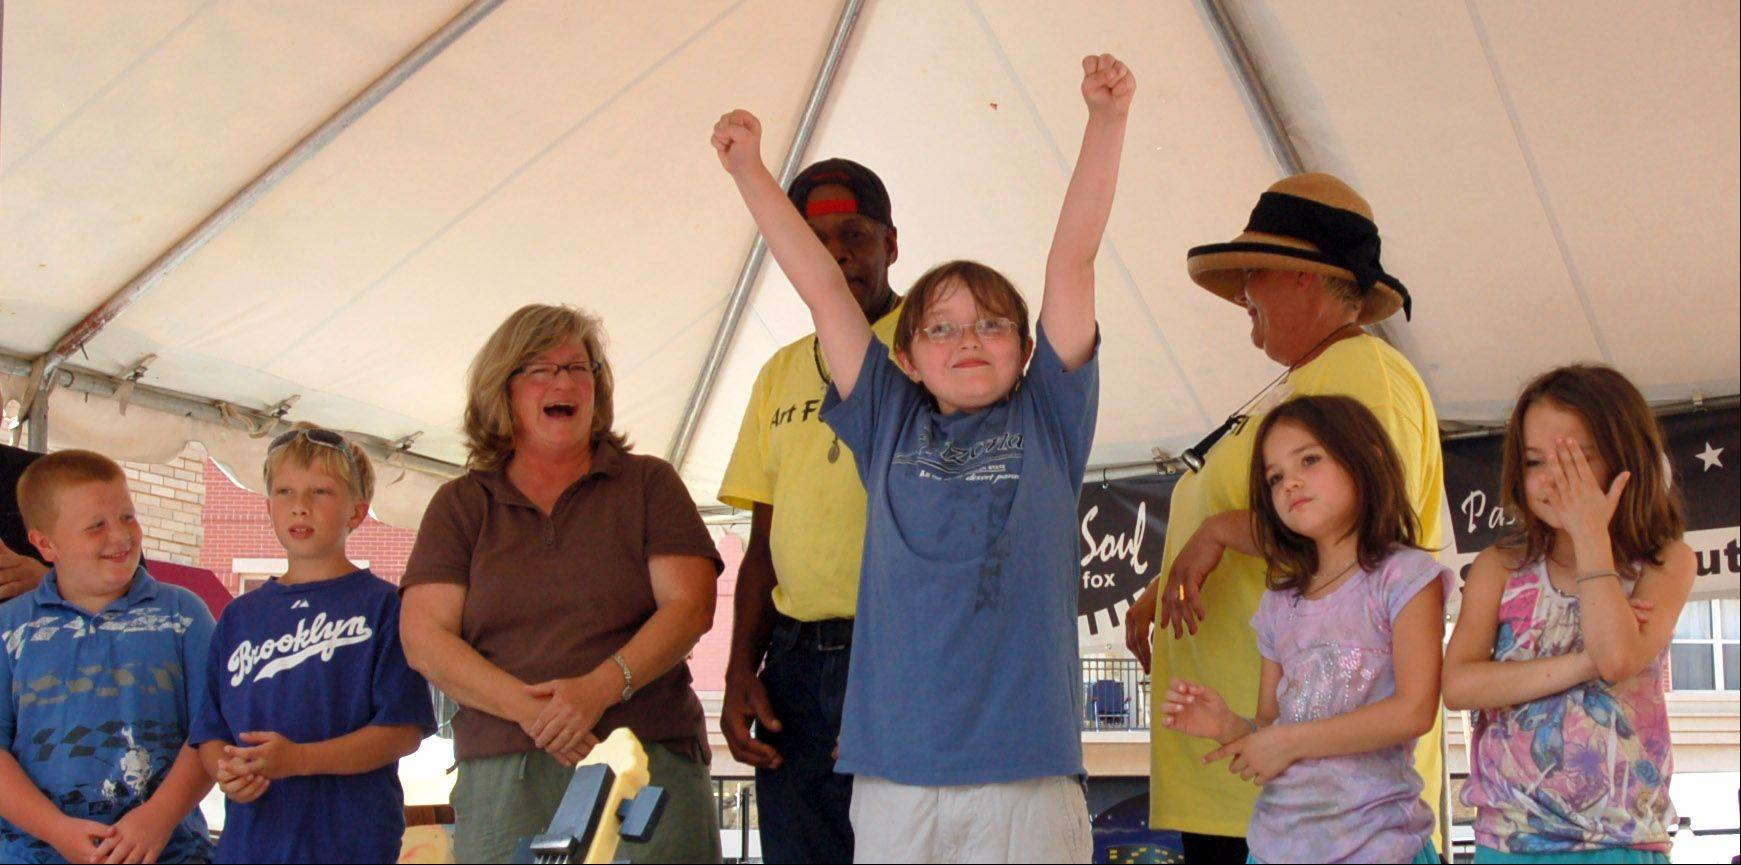 Max Moring of Elgin, 10, won the North American Gurning Championship during the Art and Soul on the Fox/Passeggiatta festival in Elgin on Sunday. Max made the best ugly face, and was chosen the winner by the crowd.